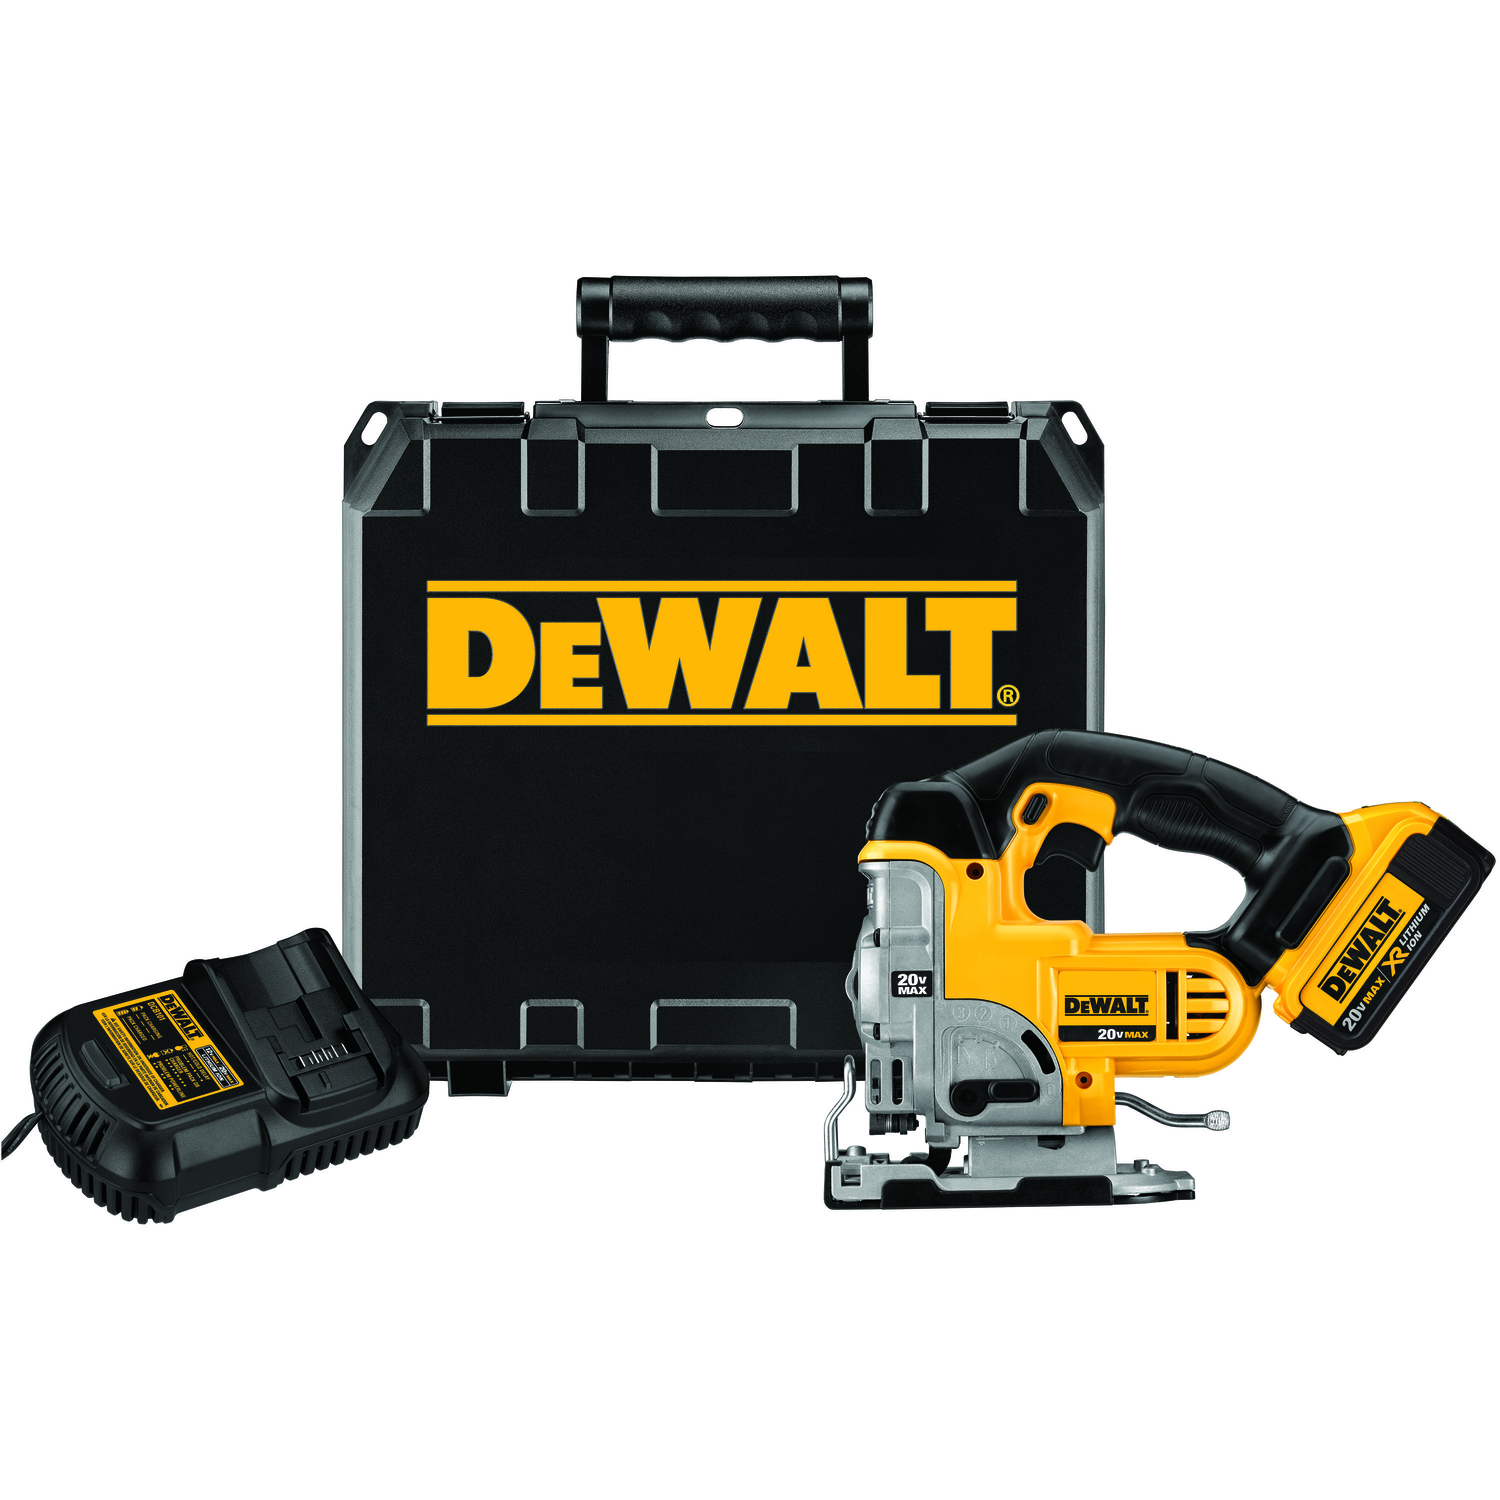 DeWalt  1 in. Cordless  Keyless Orbital Jig Saw  Kit 20 volts 4 amps 3000 spm